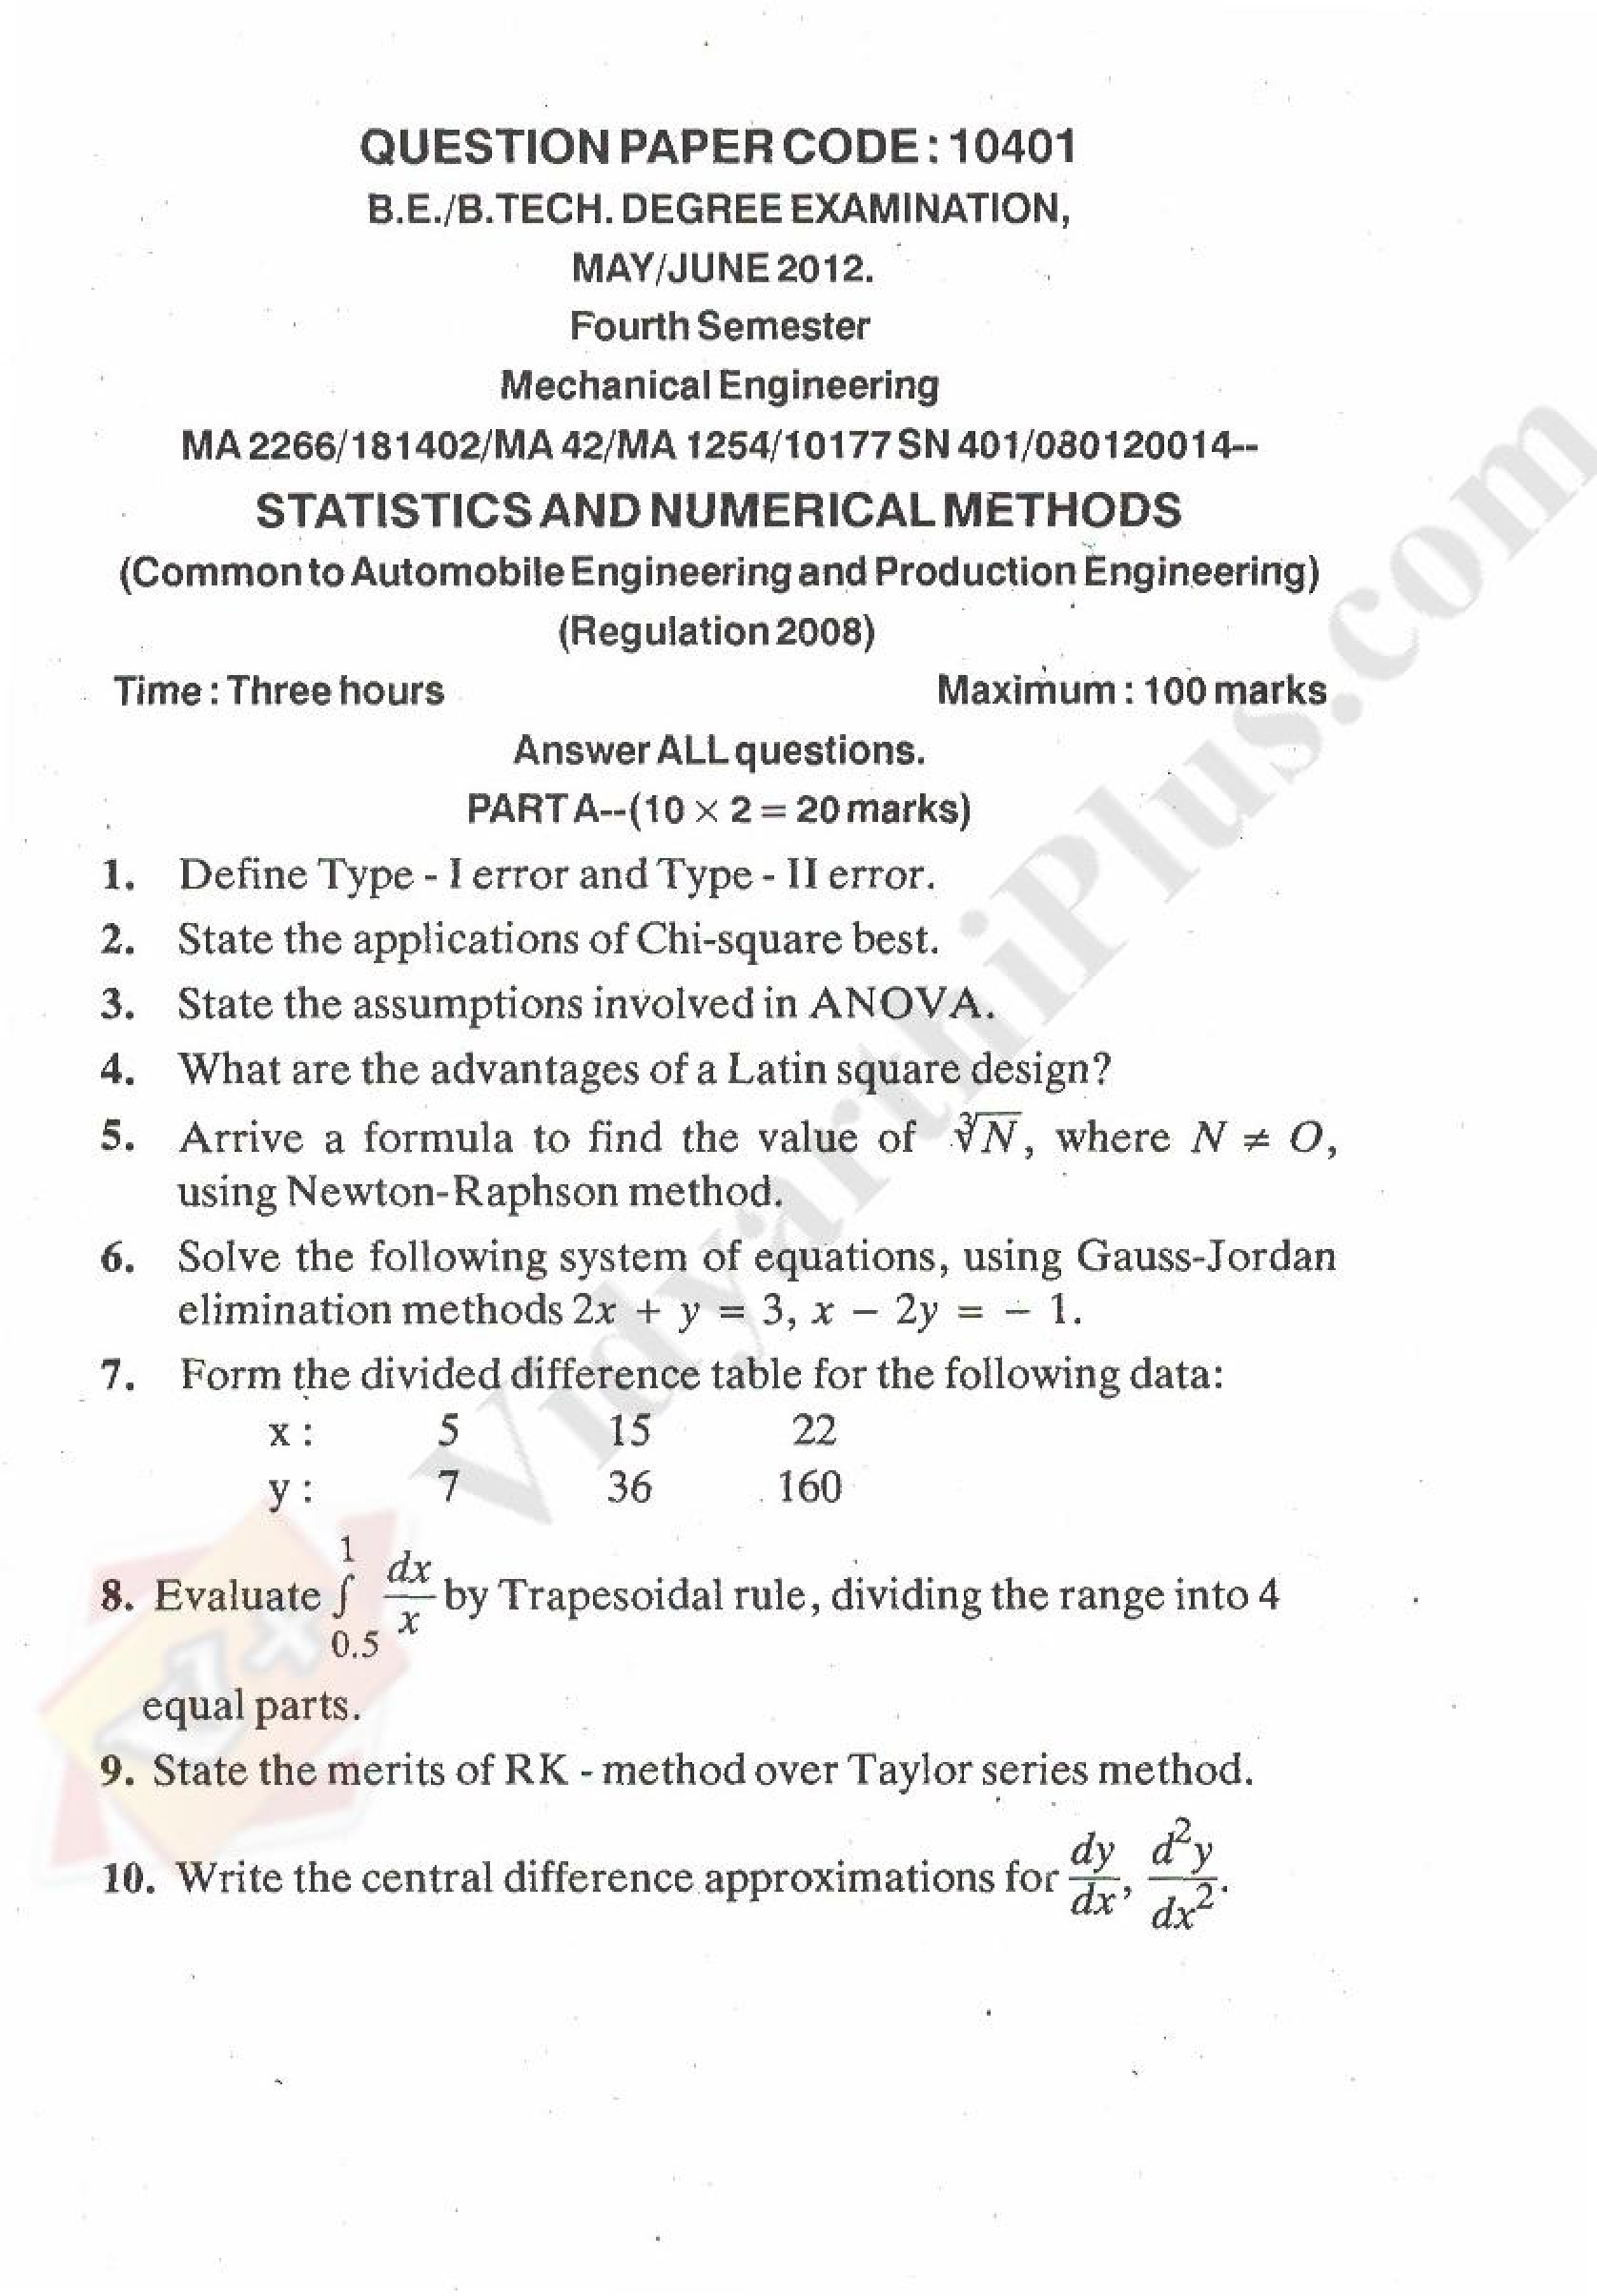 Statistics and Numerical Methods Solved Question Papers - 2015 Edition